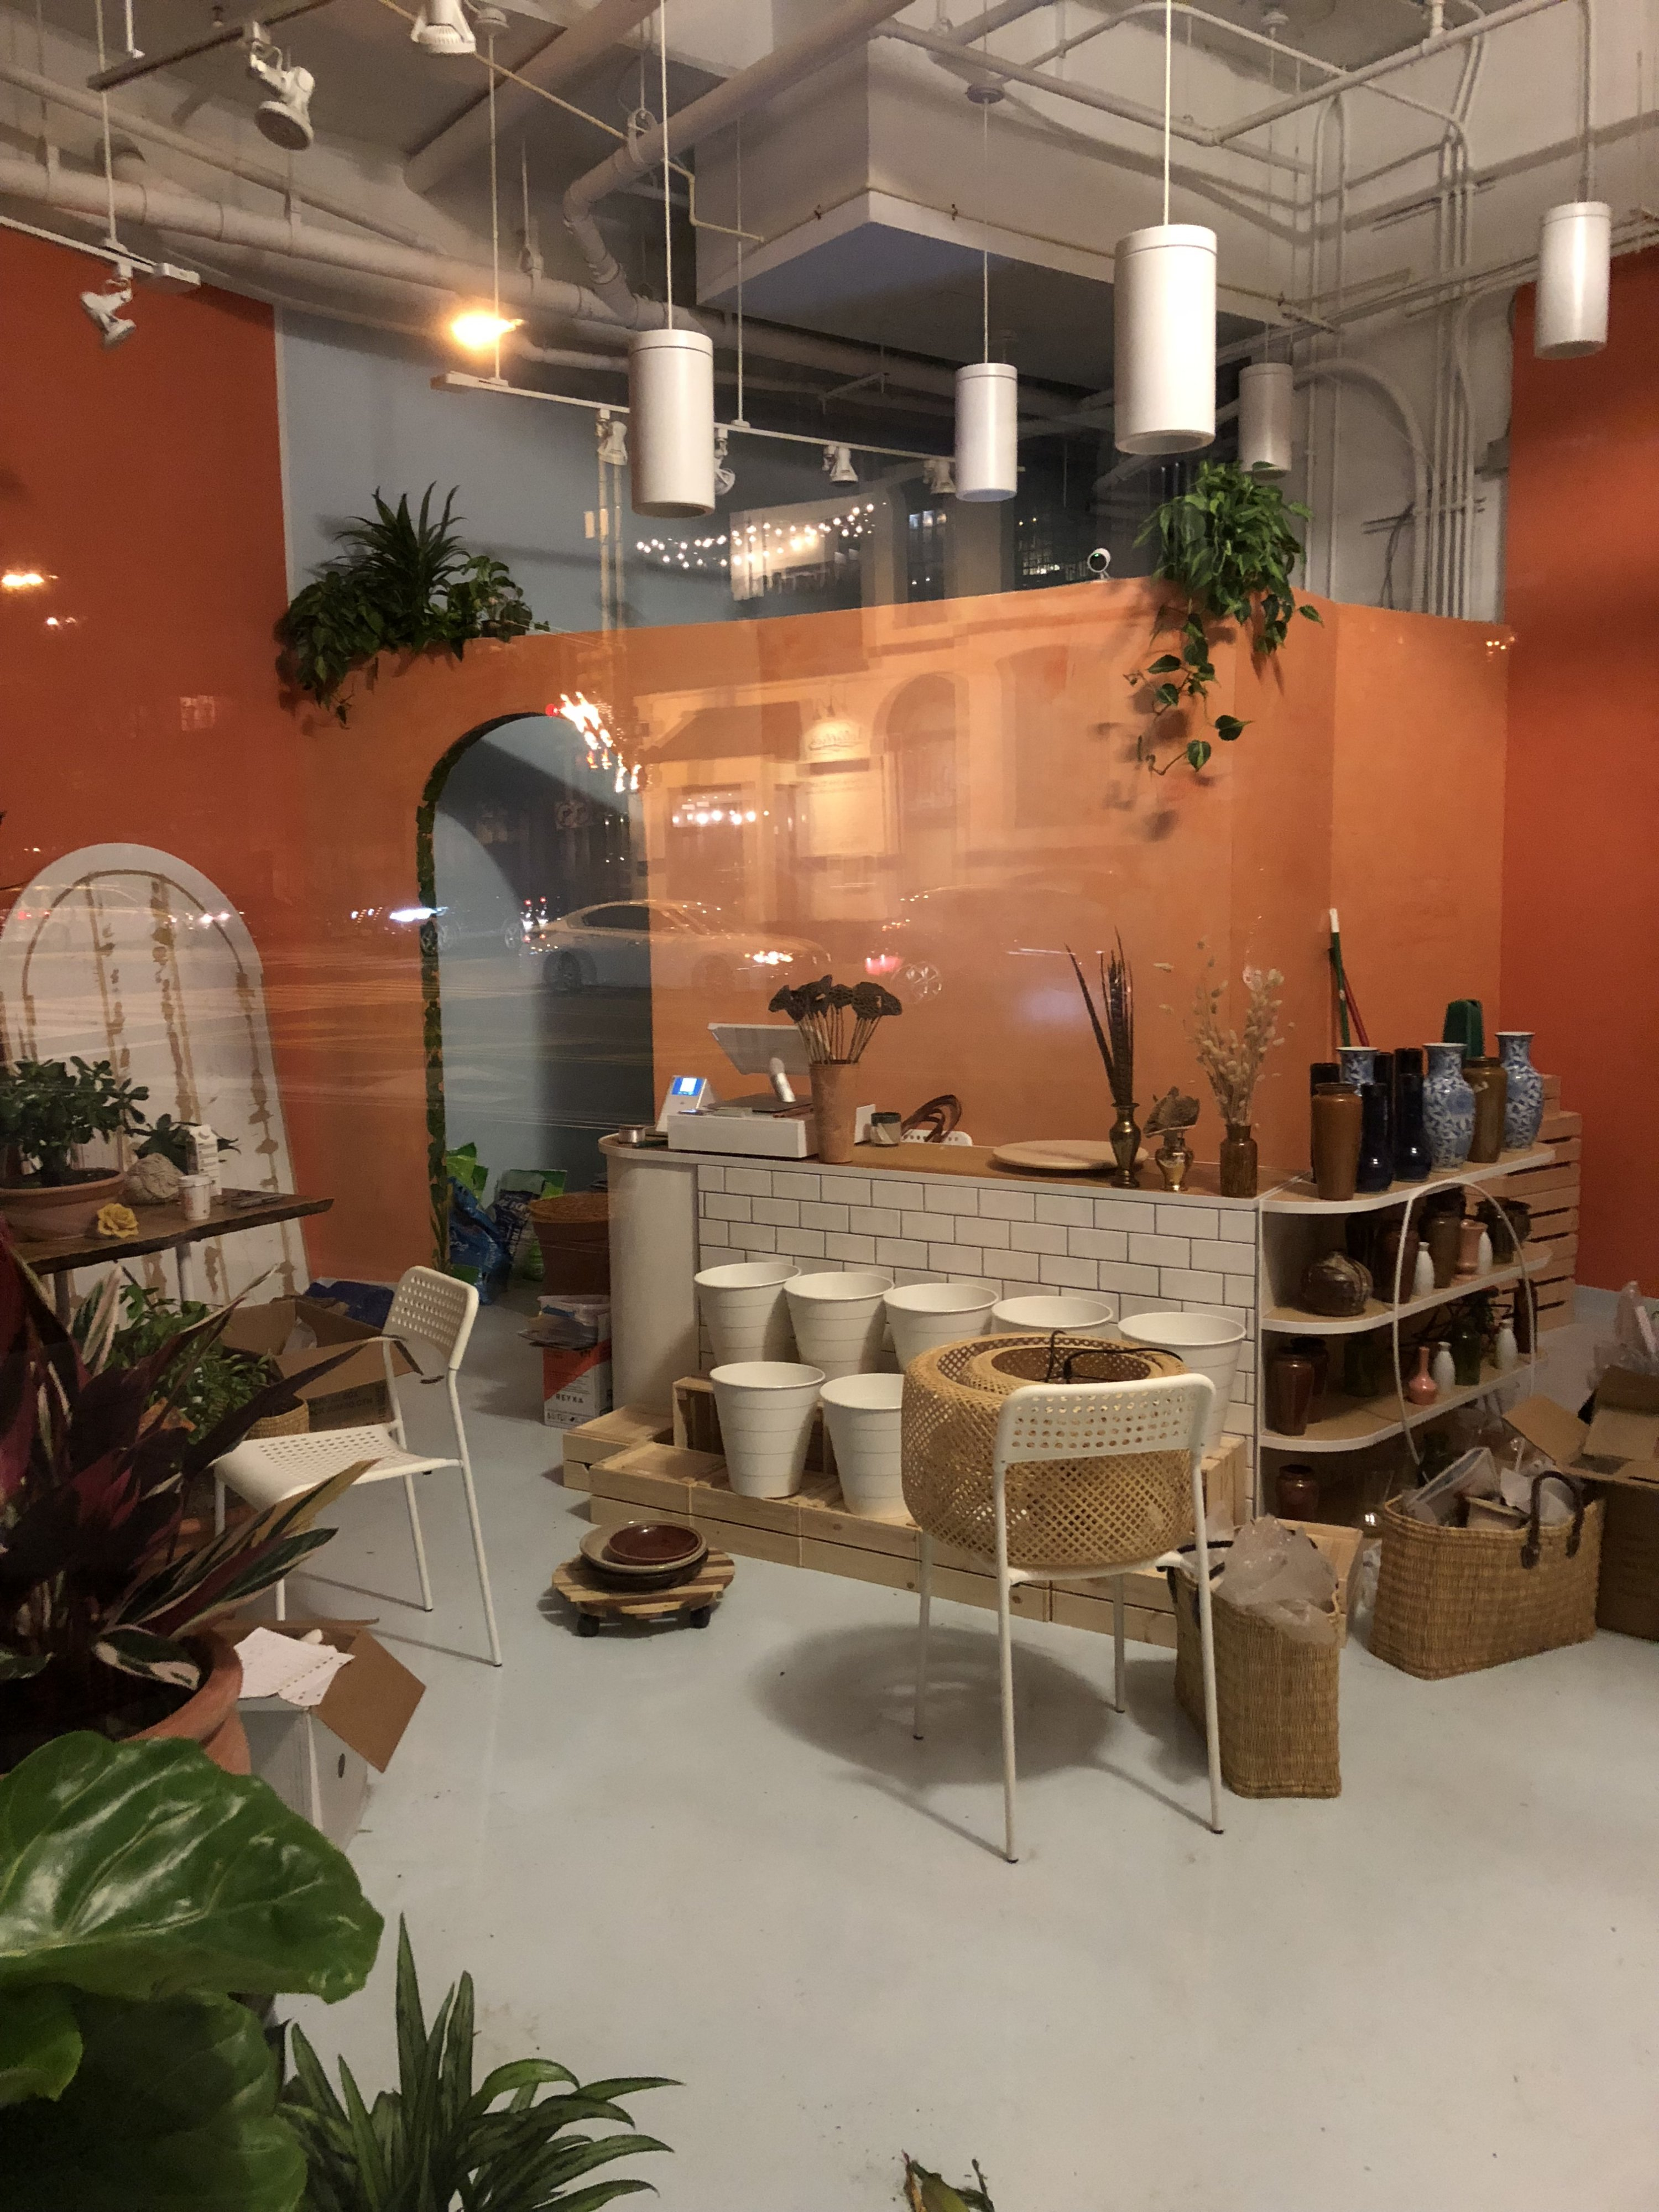 Outstanding Edgy New Plant And Floral Studio Rewild Is Bringing More Home Remodeling Inspirations Basidirectenergyitoicom